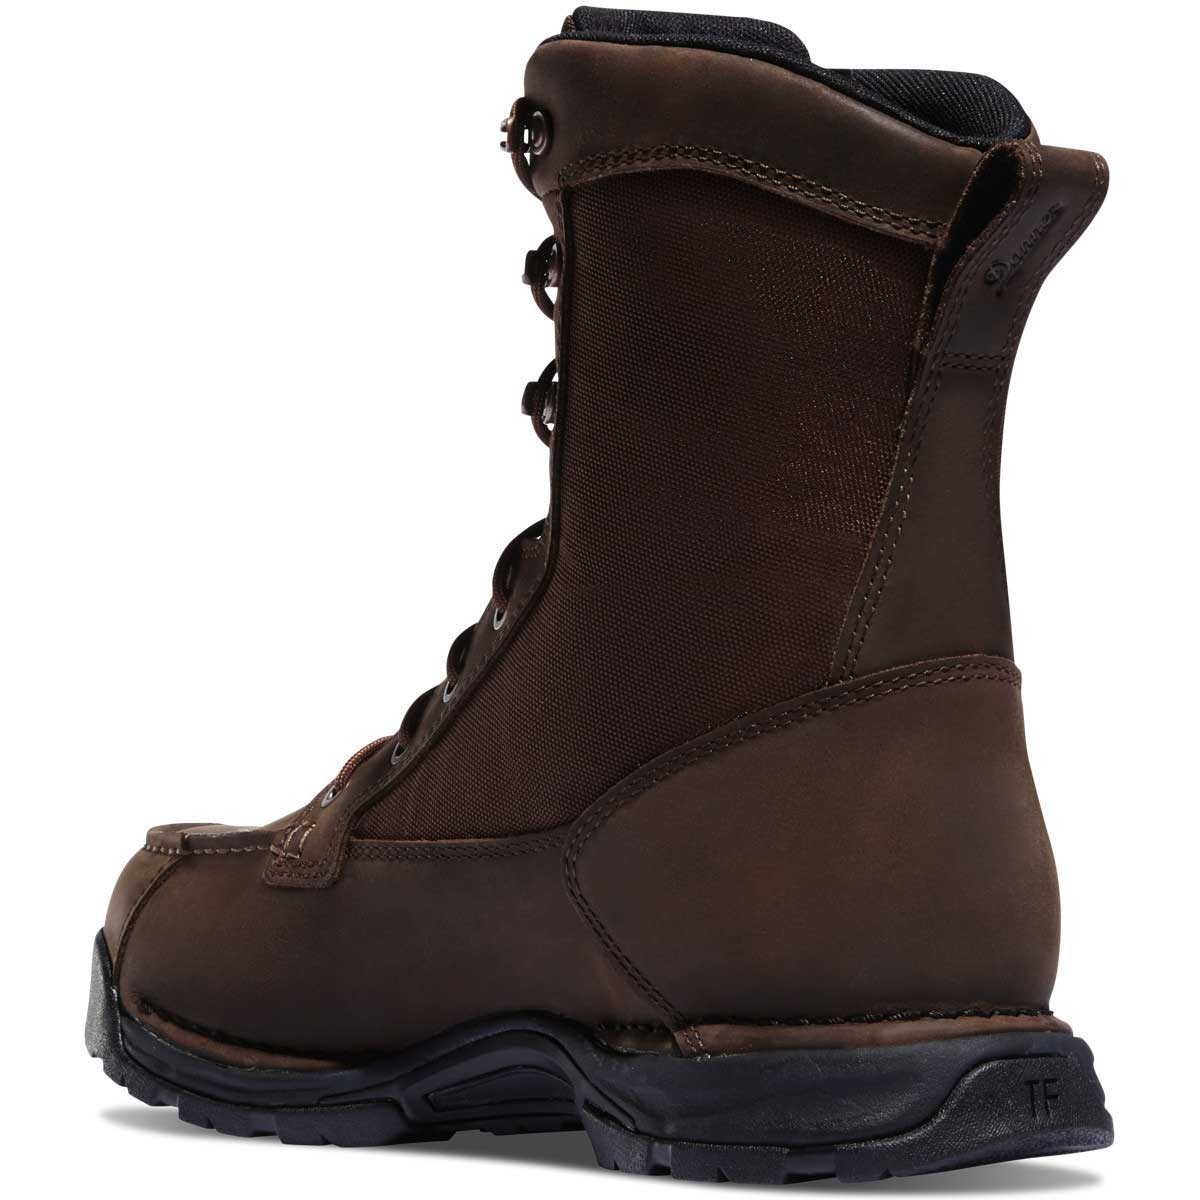 "Danner Sharptail 8"" Dark Brown Boot Upland Hunting Boot_5.jpg"